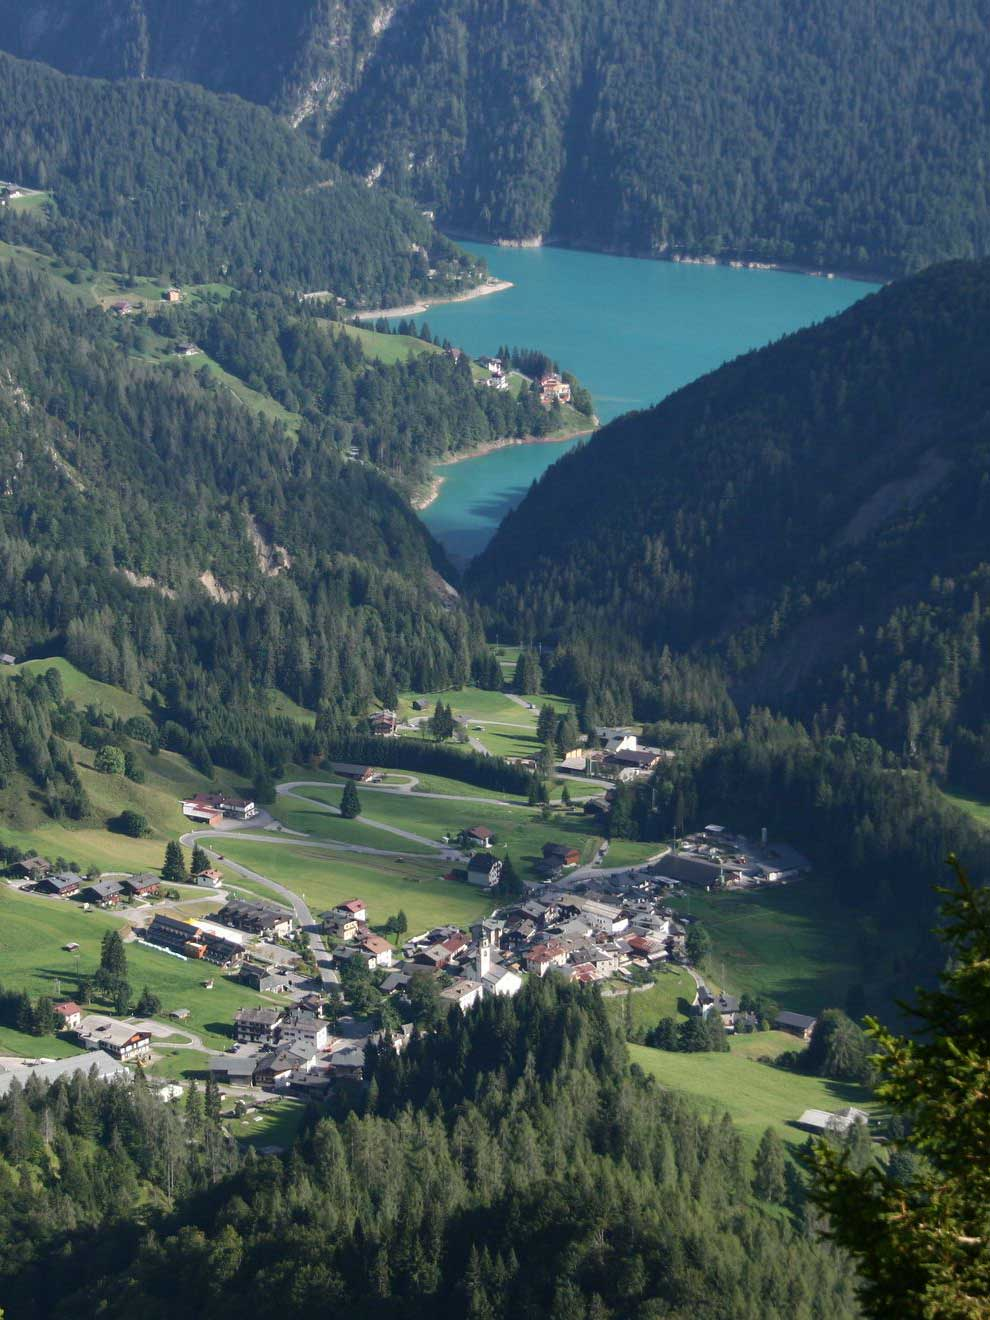 Sauris Lake: a green gem surrounded by a crown of mountains